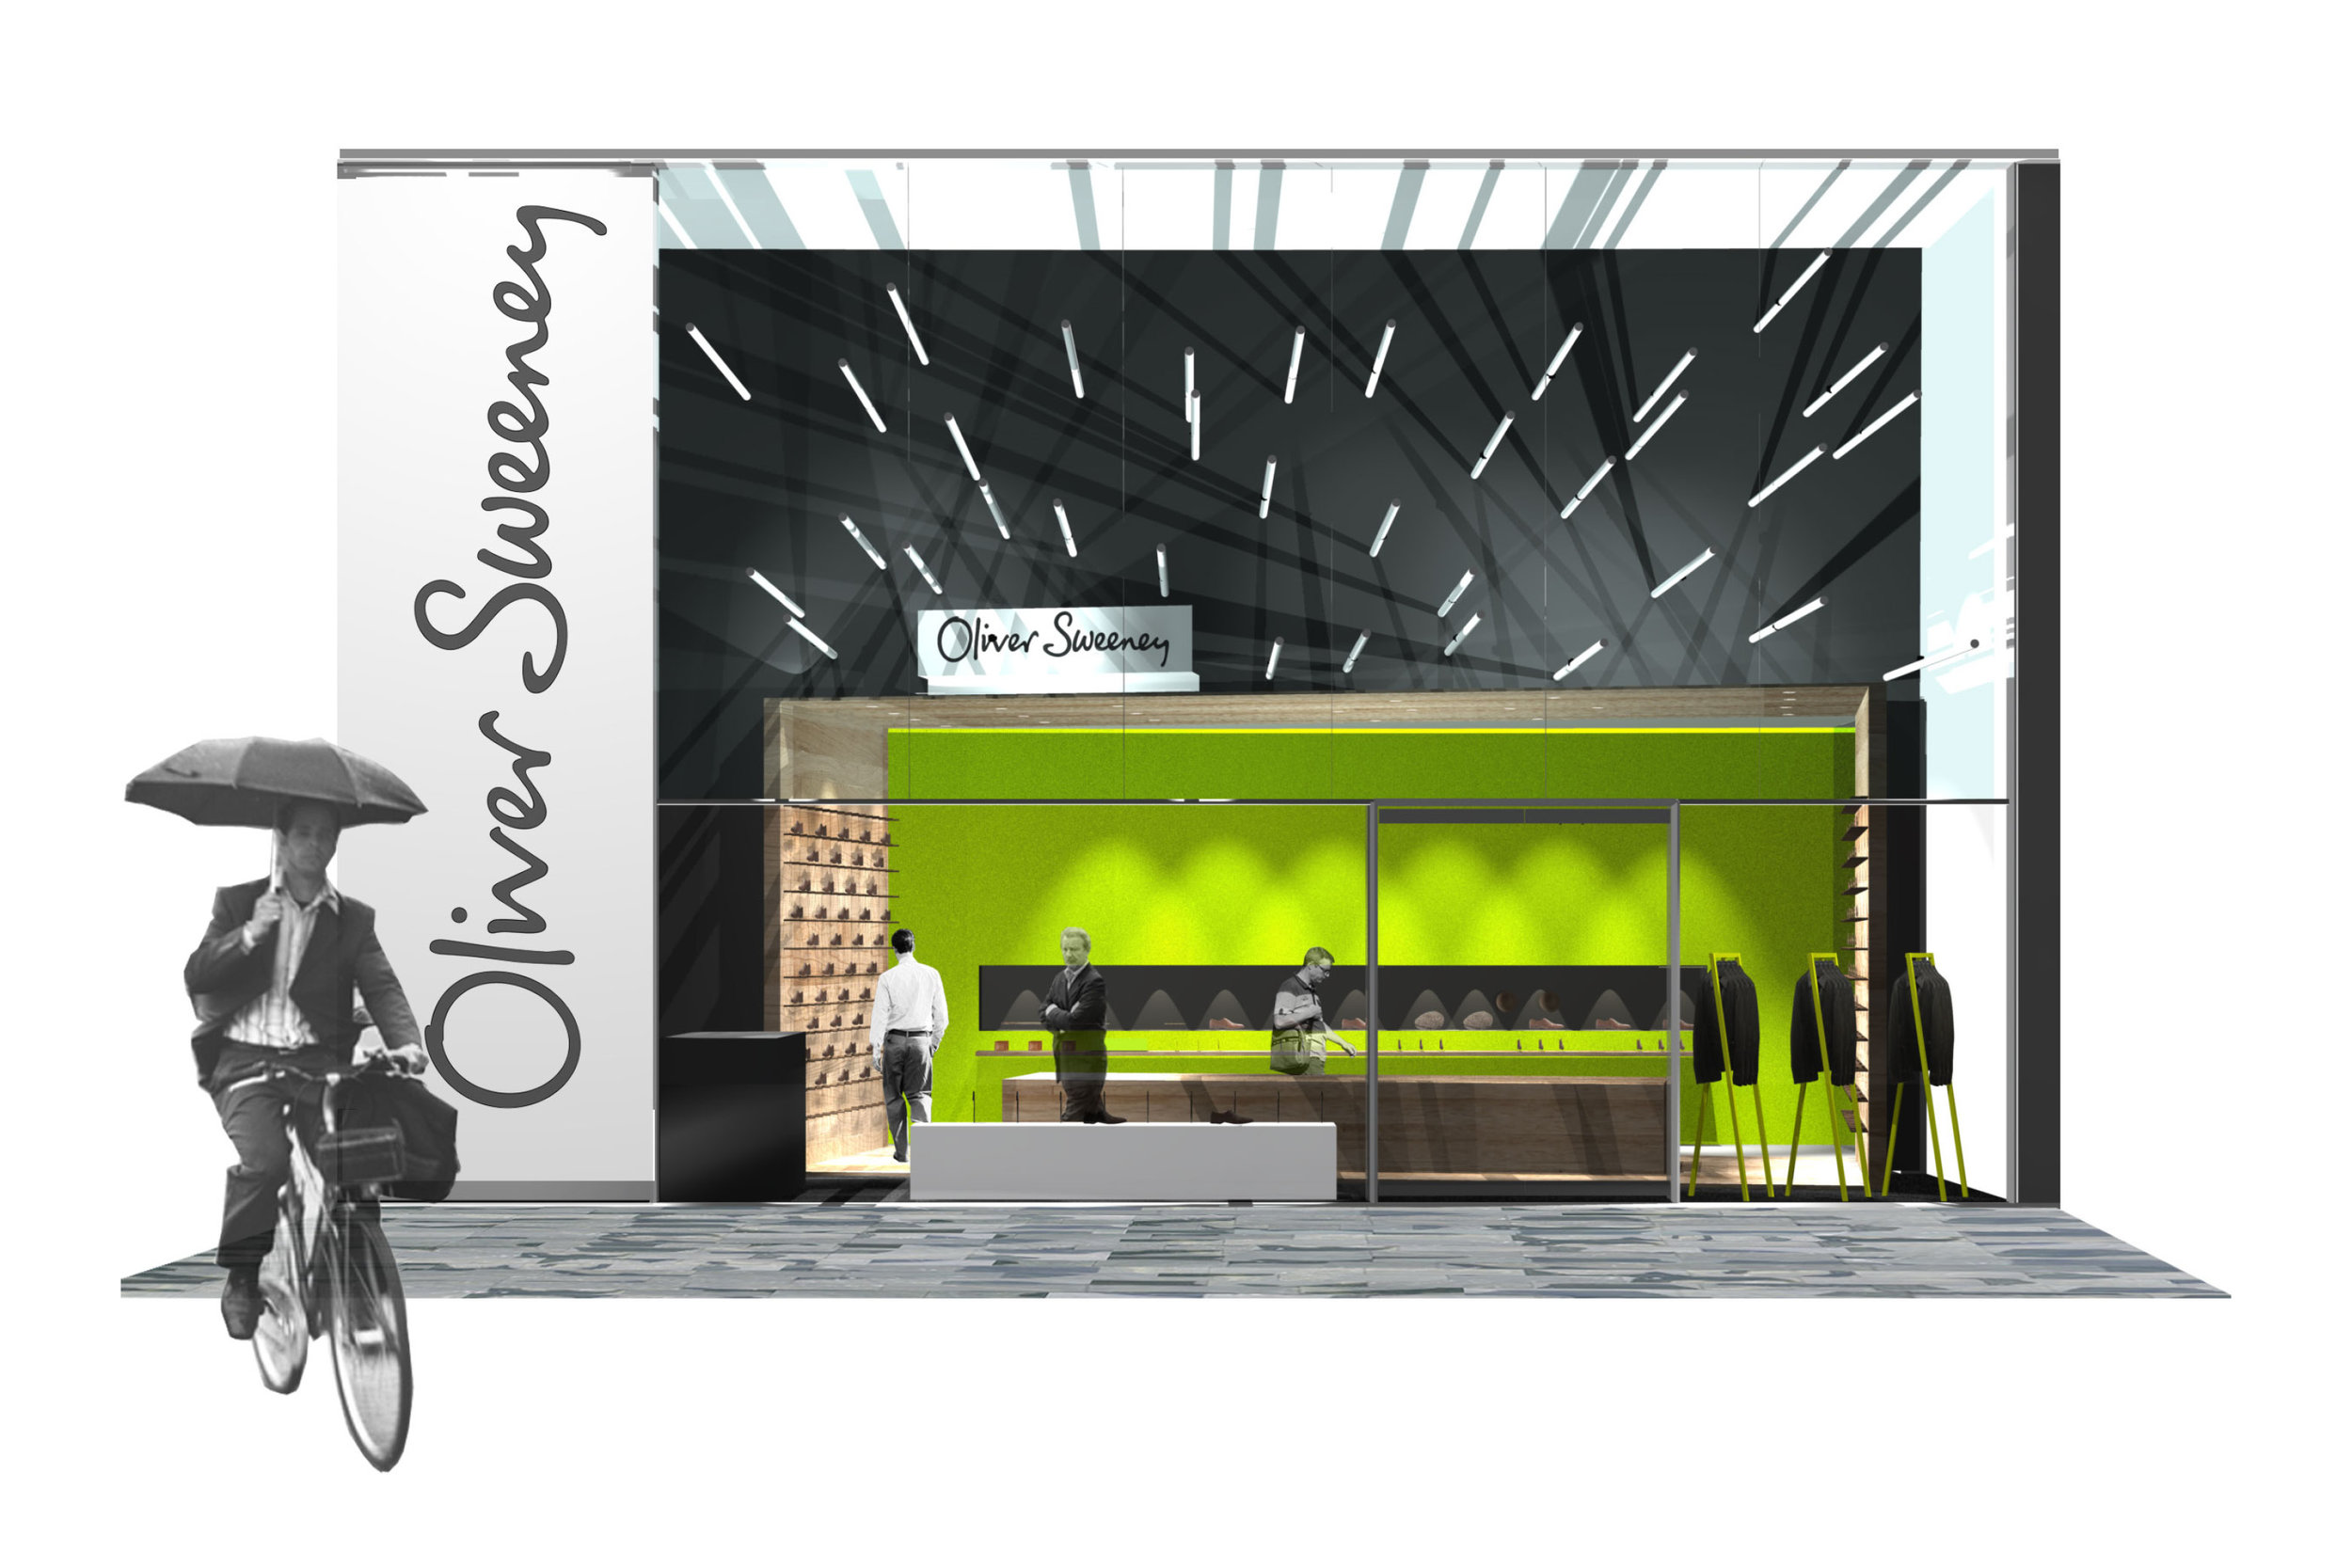 Concept Visual for Oliver Sweeney Stores in the UK